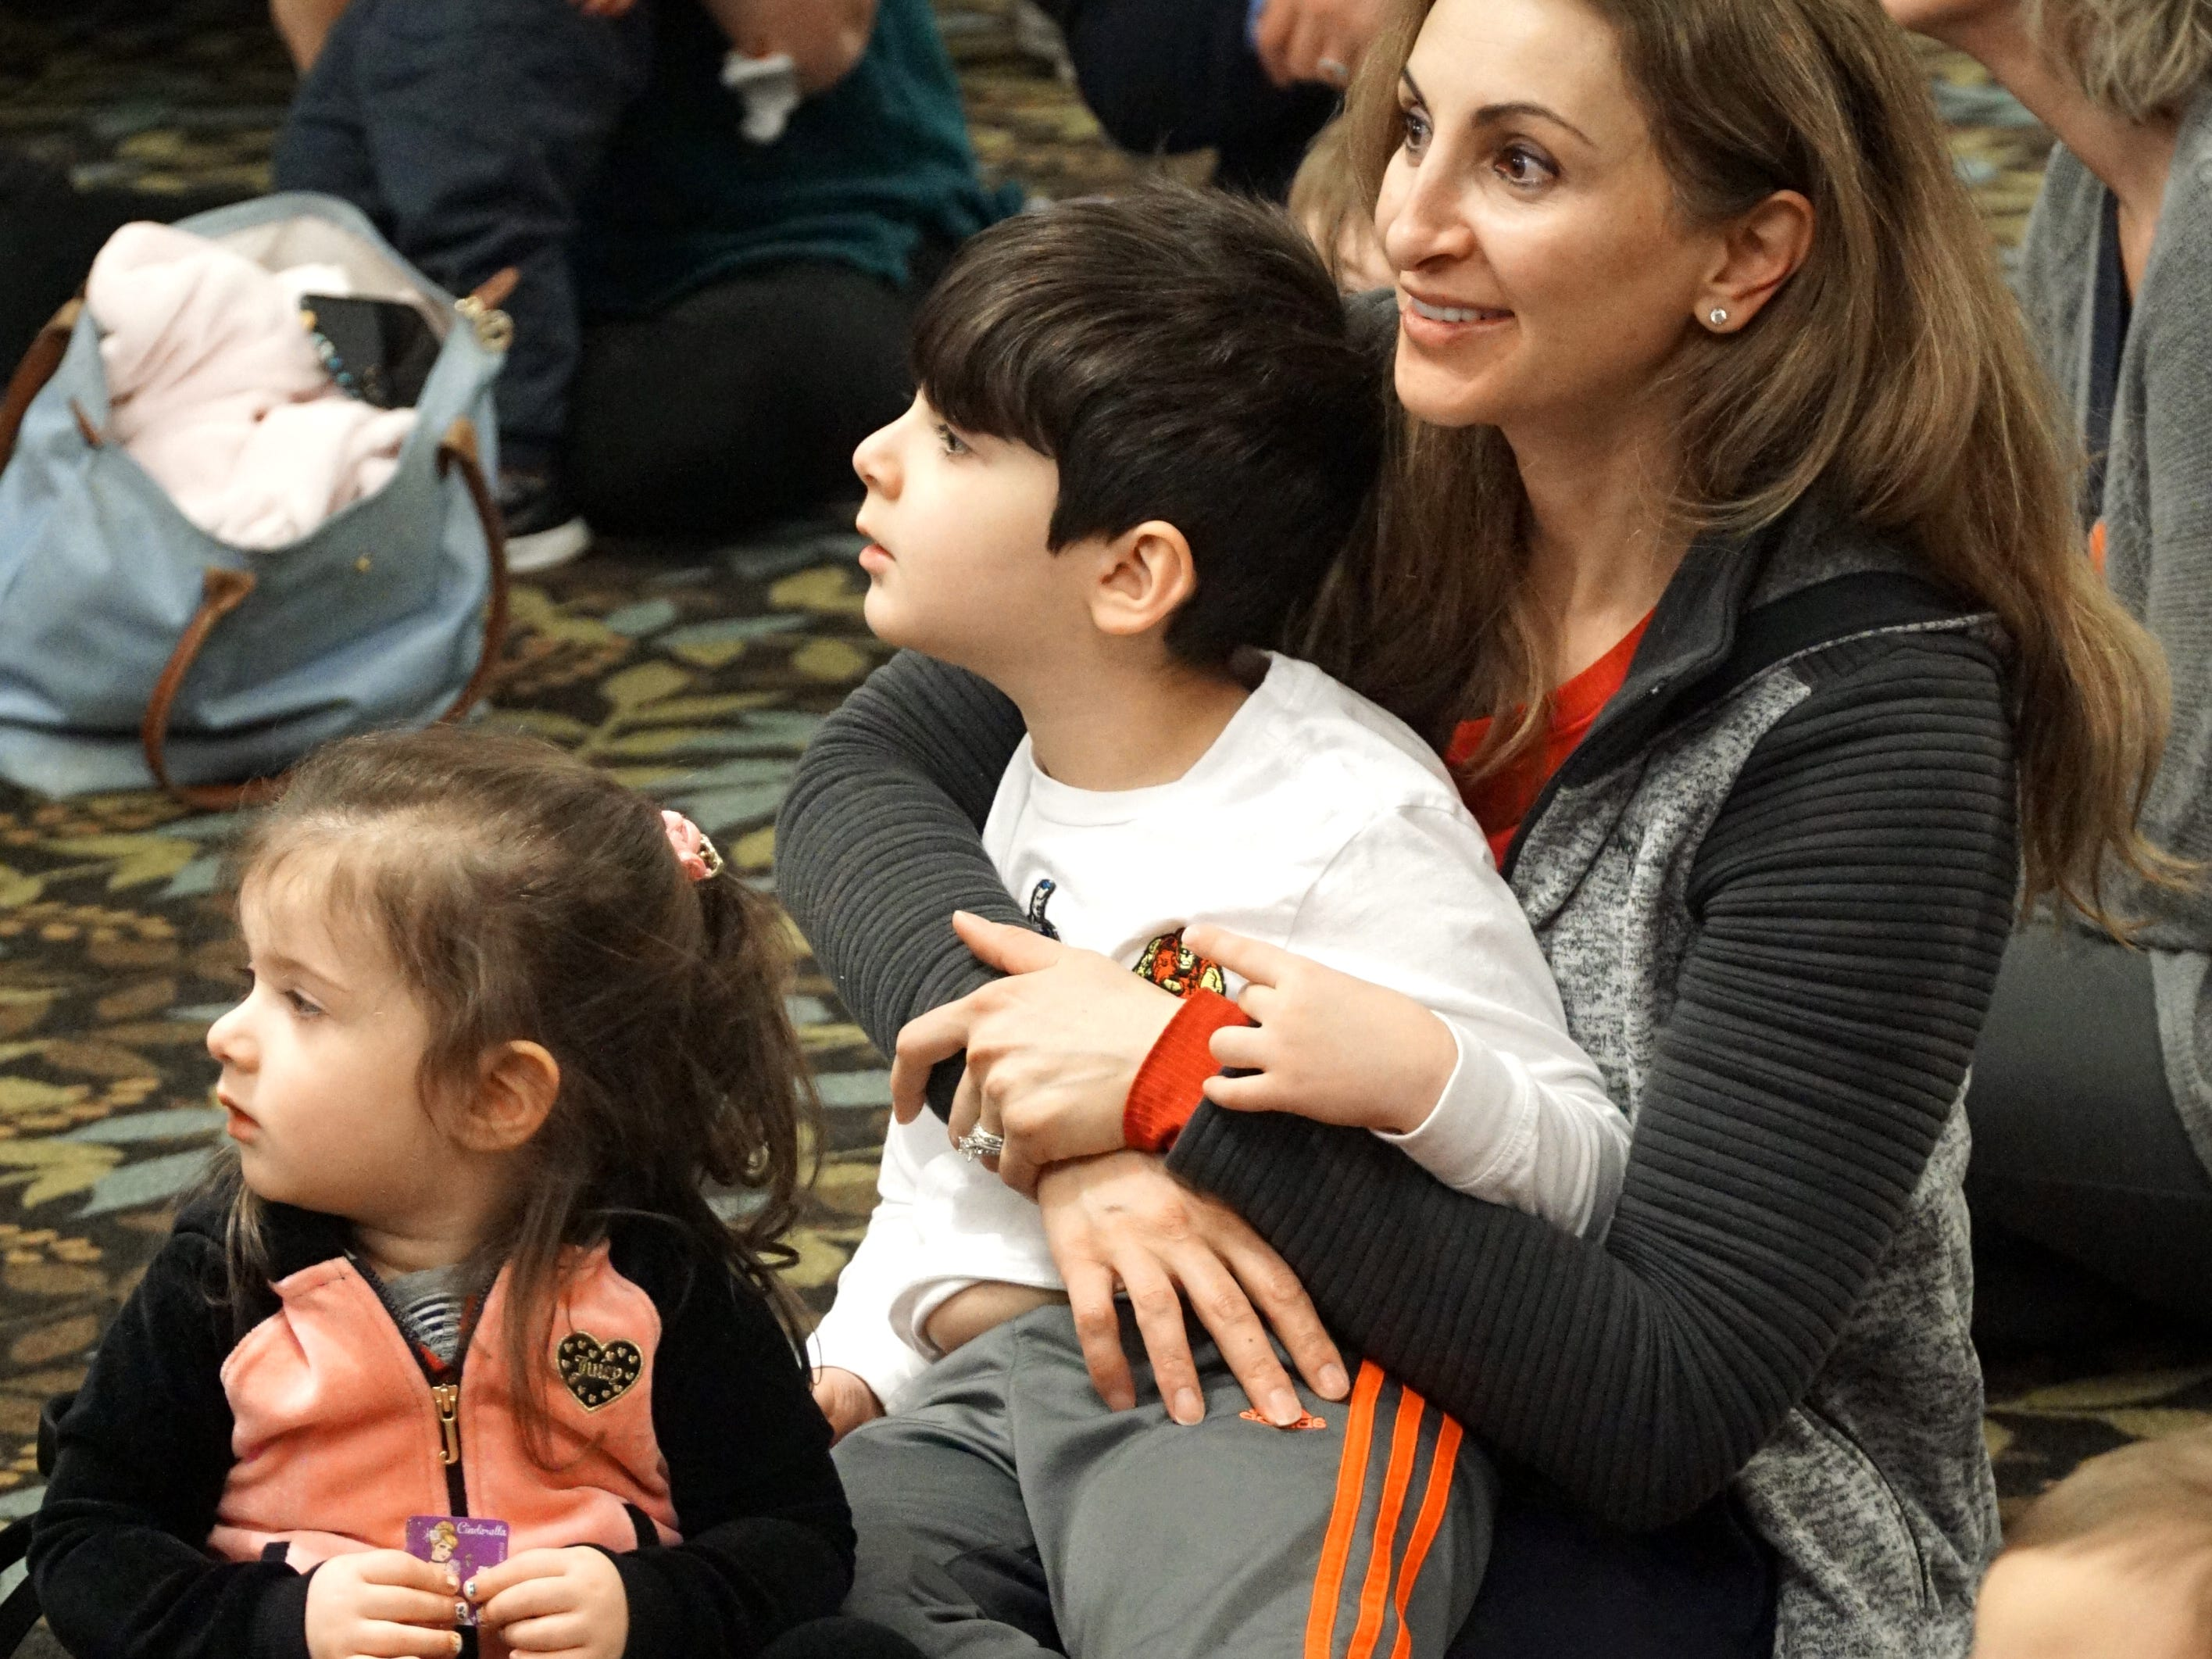 Alexandra Kief and her children Allison, 2, and Robert, 4, watch the Highland Dance routines on April 4 at the Baldwin Public Library in Birmingham.